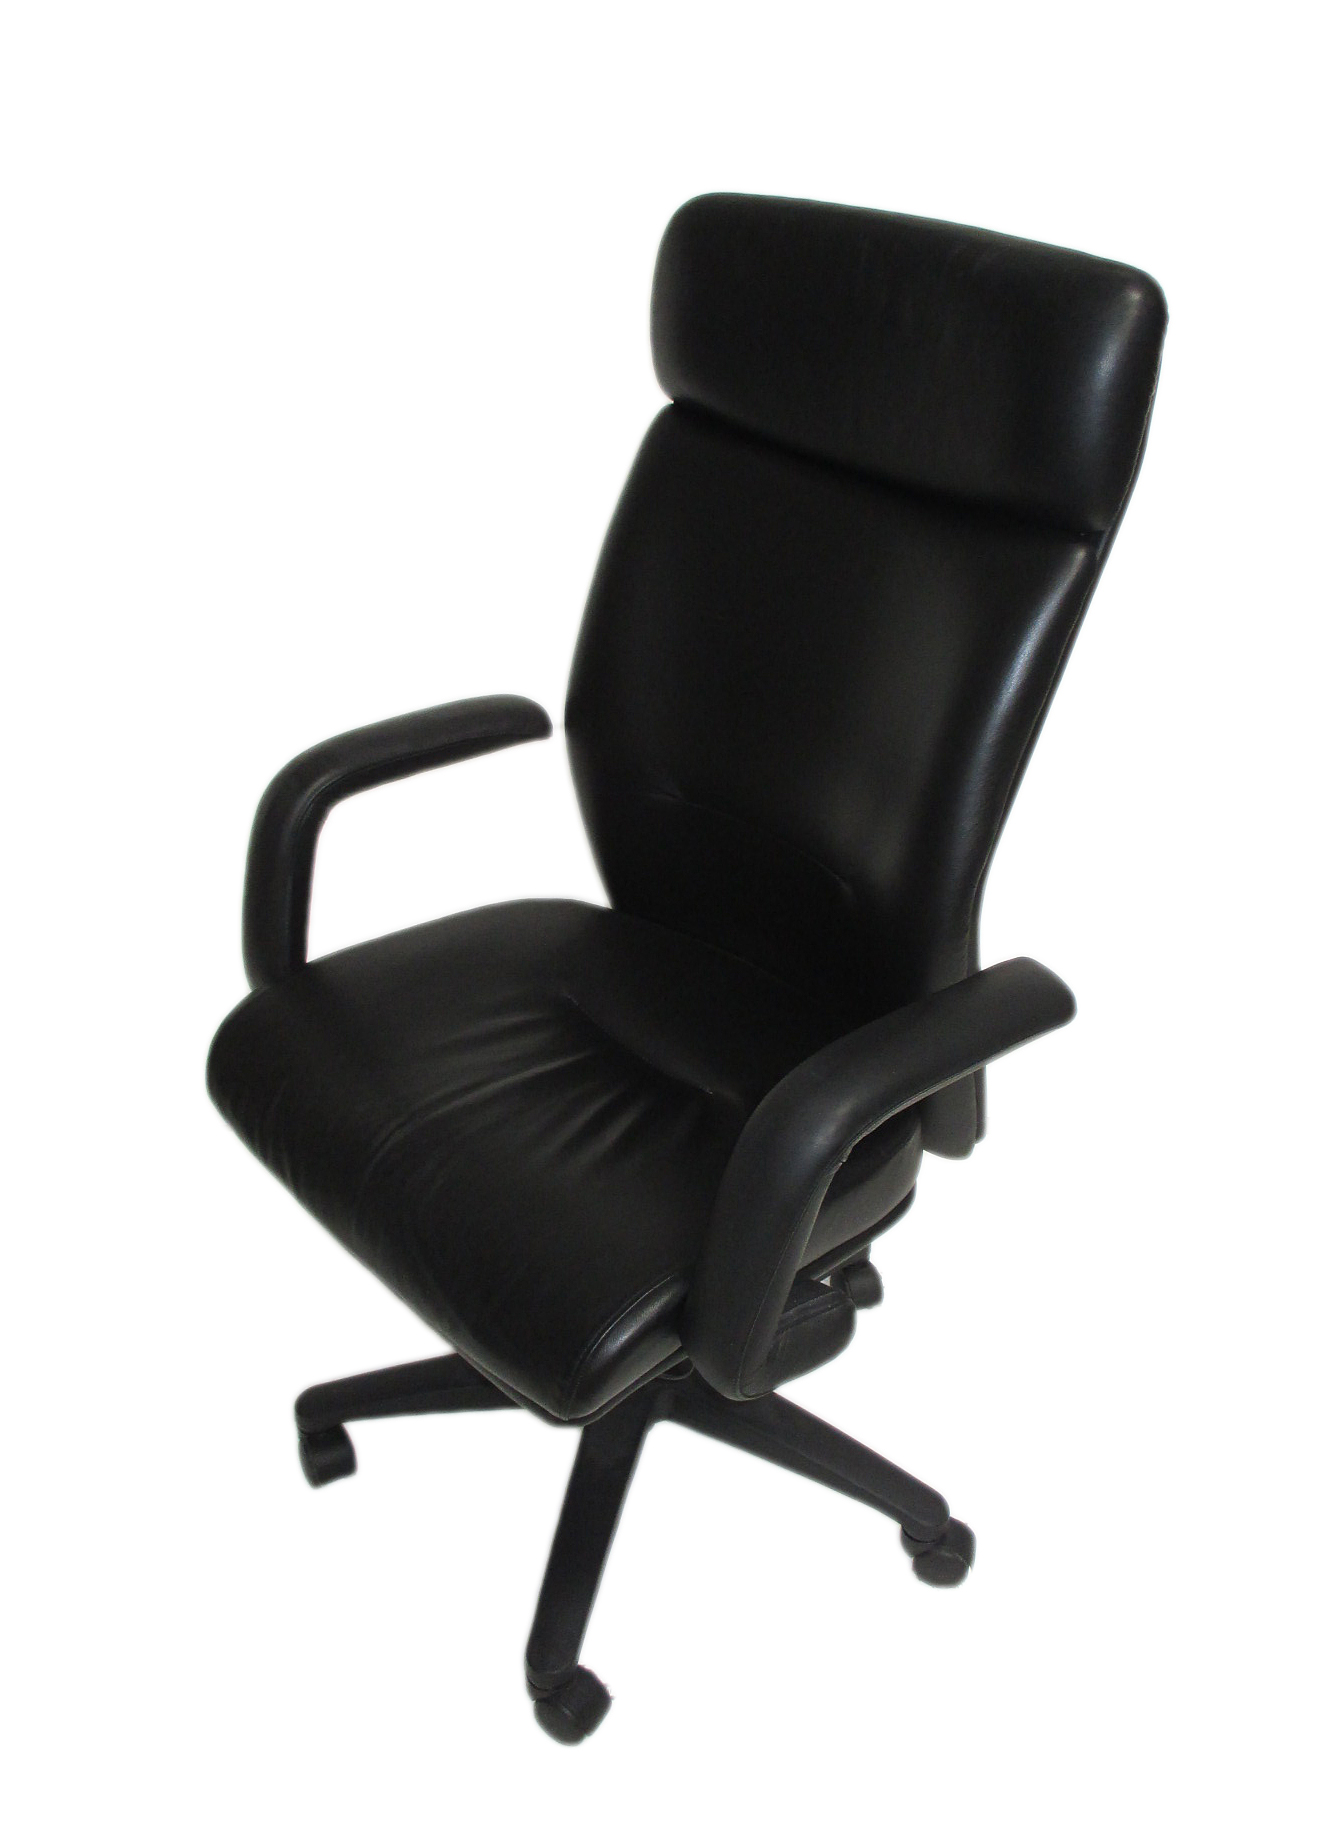 Astonishing High Back Executive Chair With Black Leather Machost Co Dining Chair Design Ideas Machostcouk